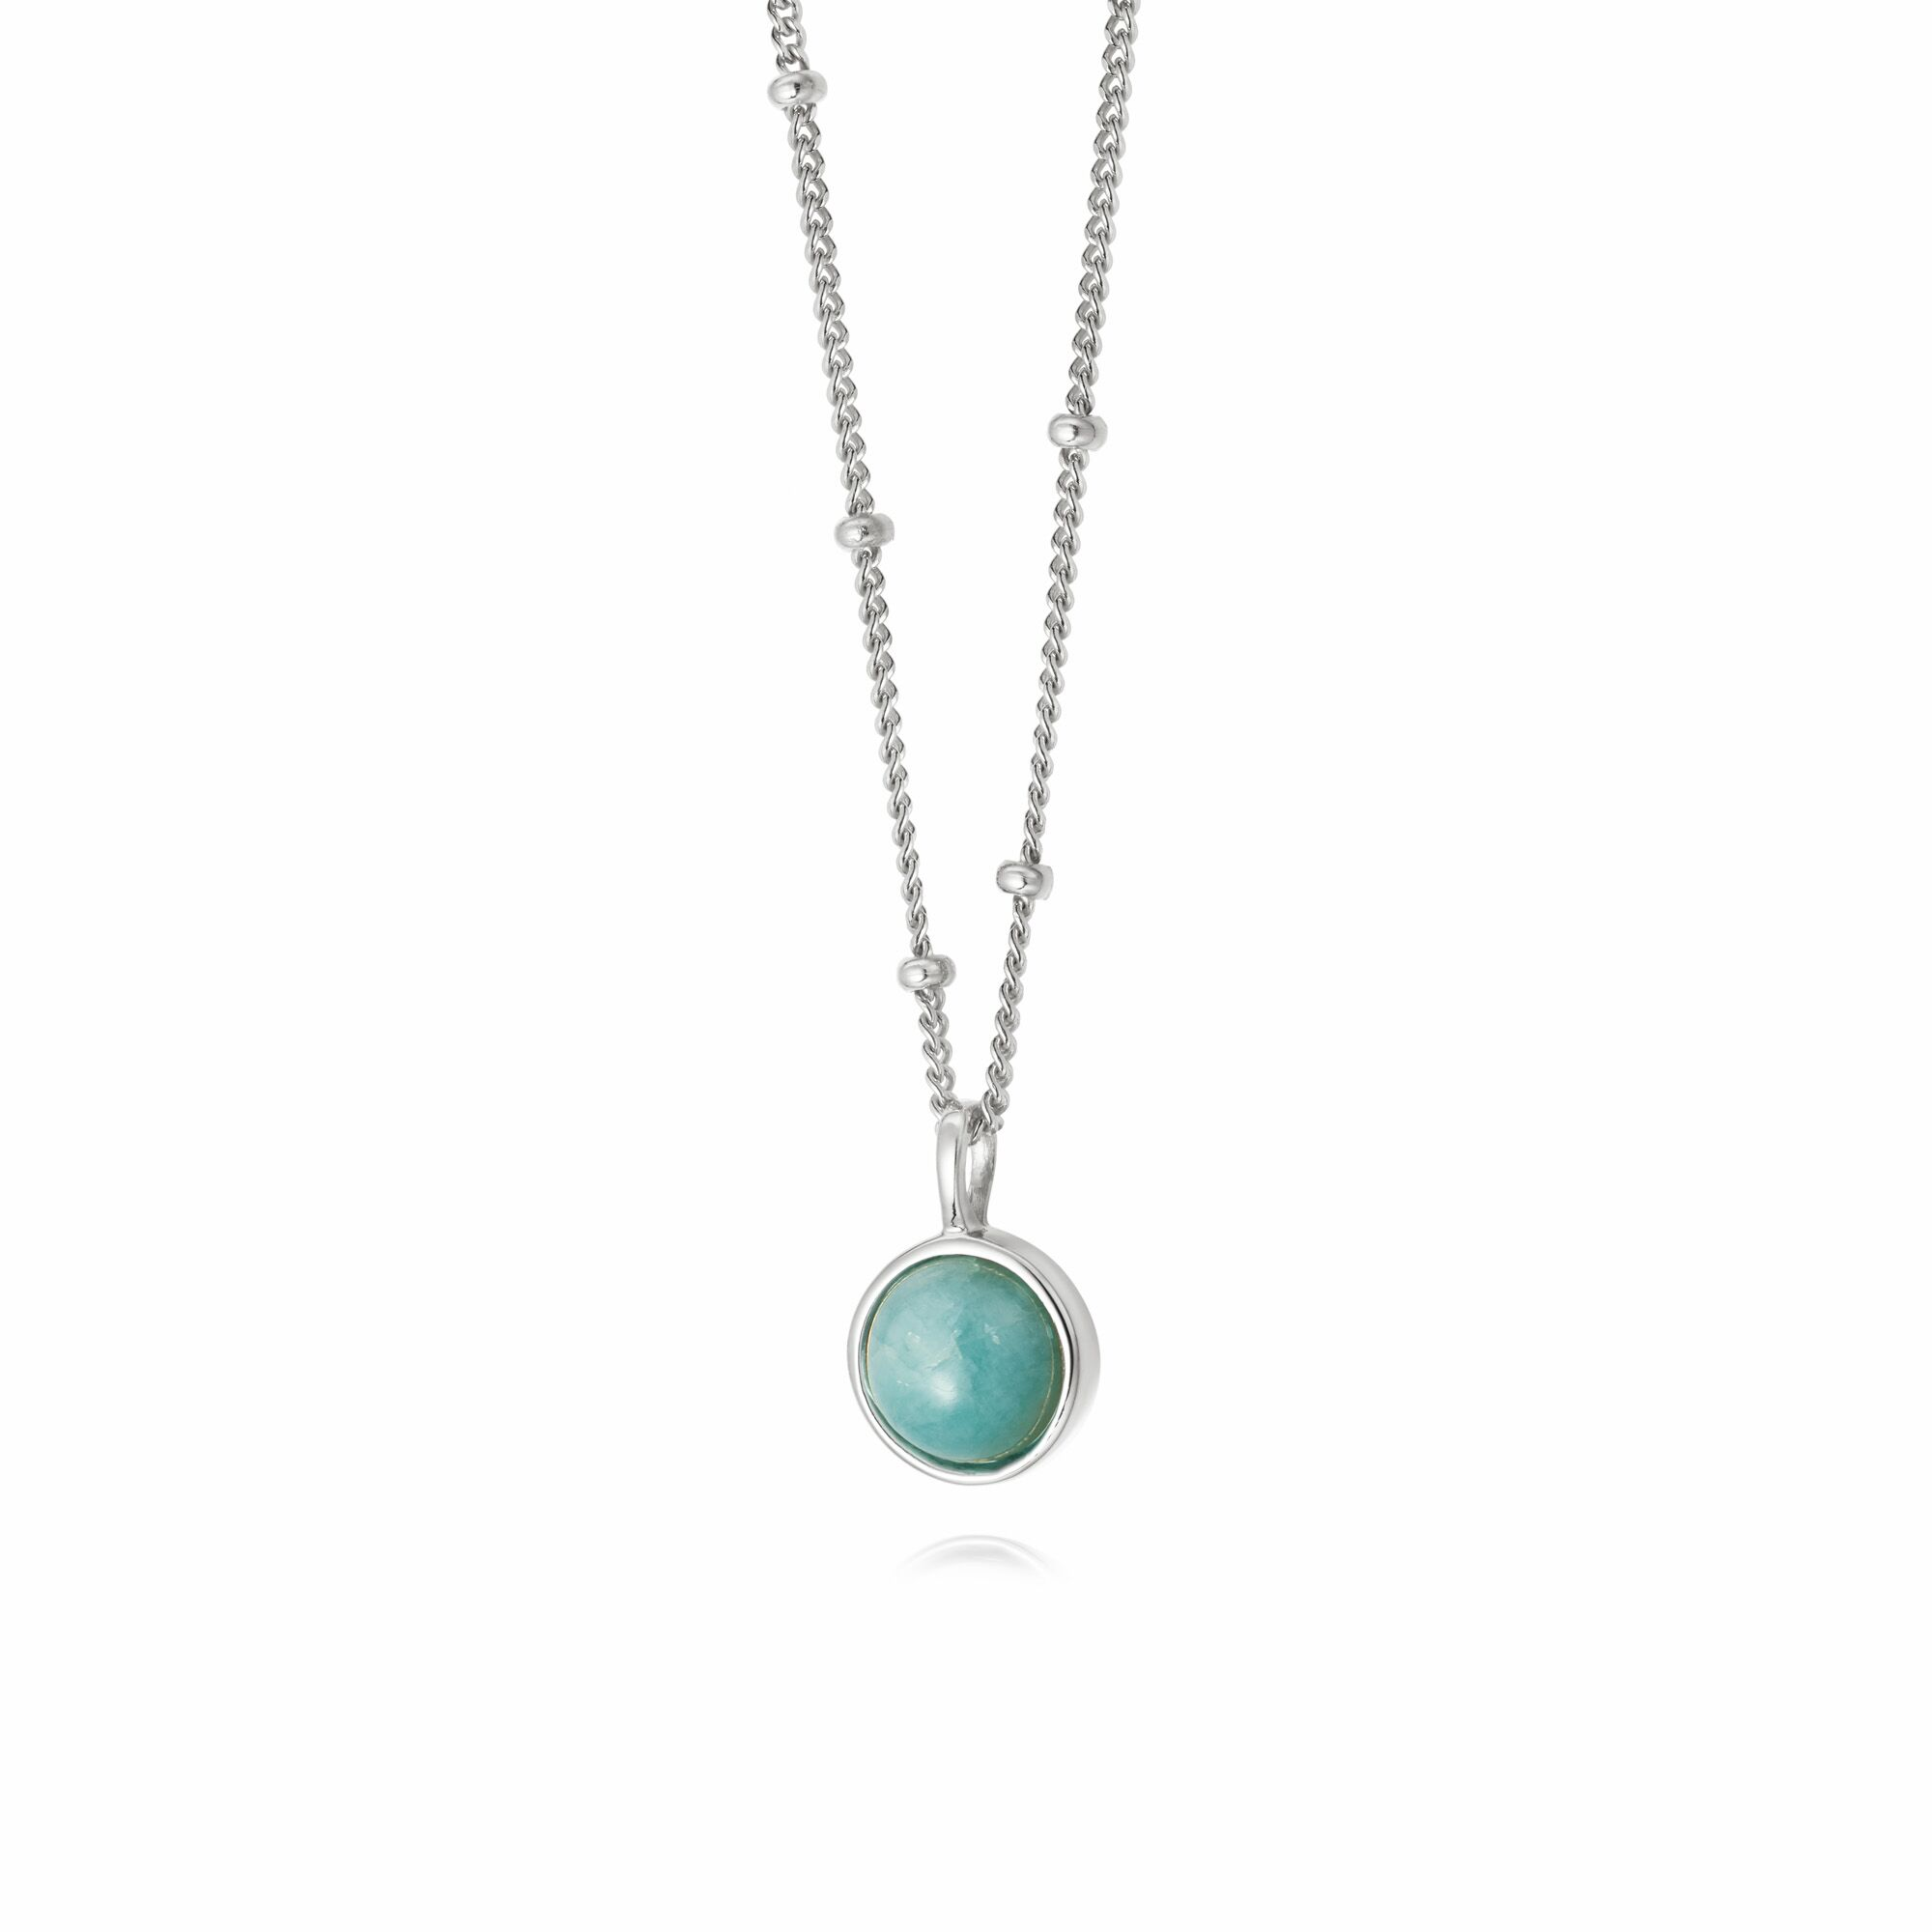 AMAZONITE HEALING NECKLACE SILVER